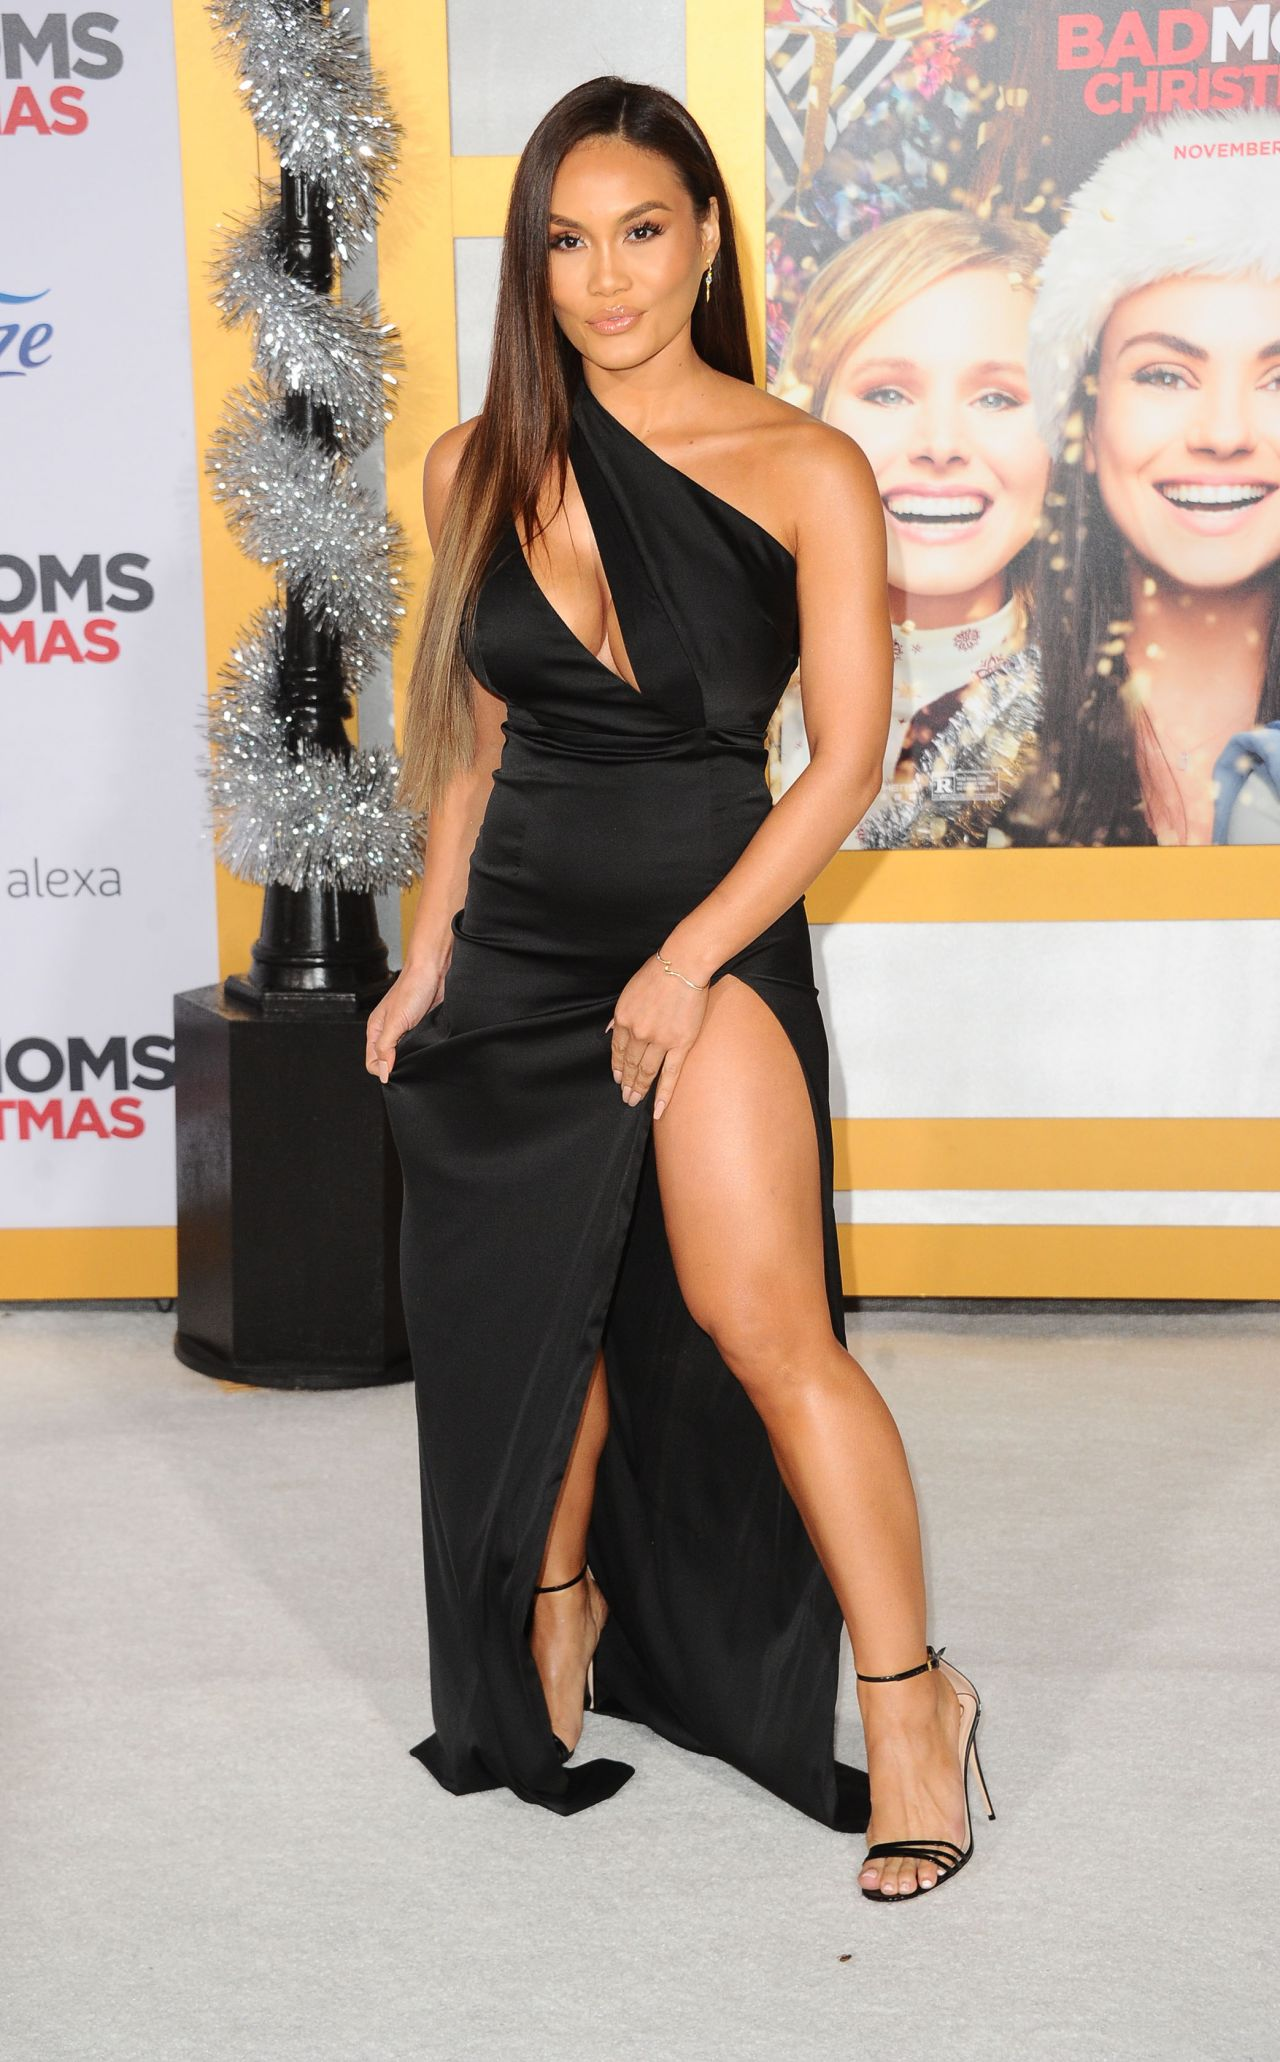 Daphne Joy  A Bad Moms Christmas Premiere In Westwood-2351